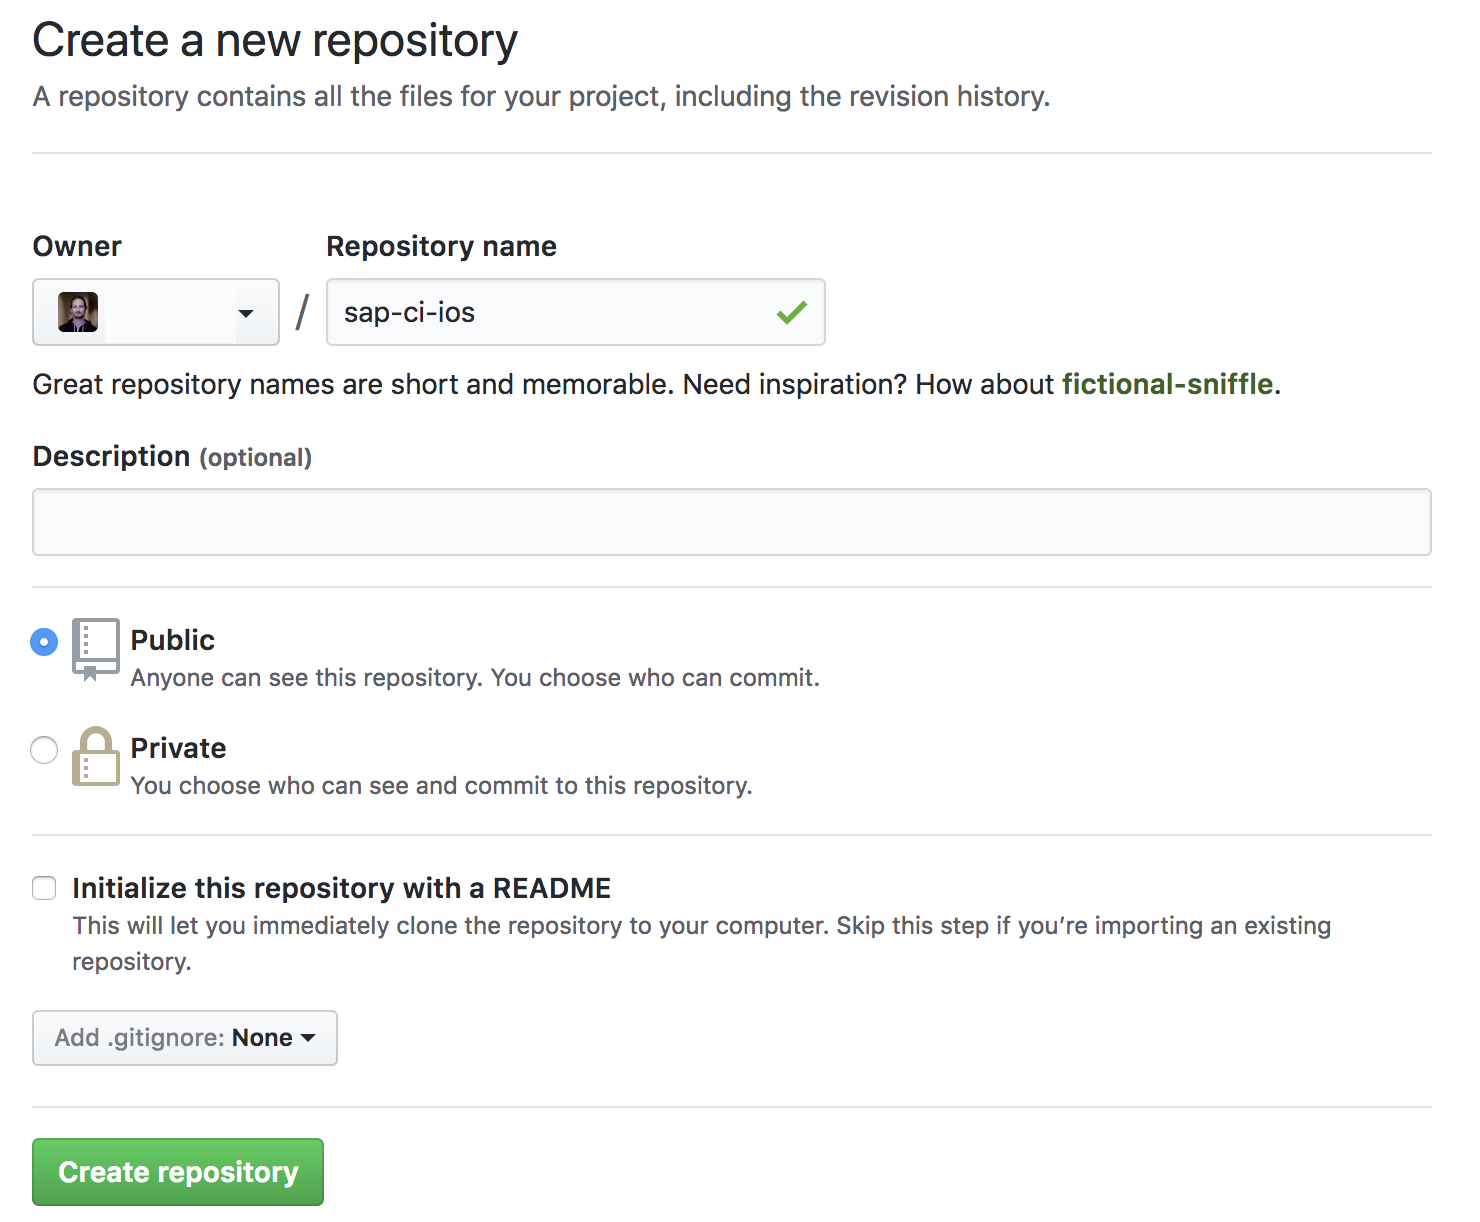 Figure%2026%3A%20Creating%20a%20new%20repository%20in%20Github